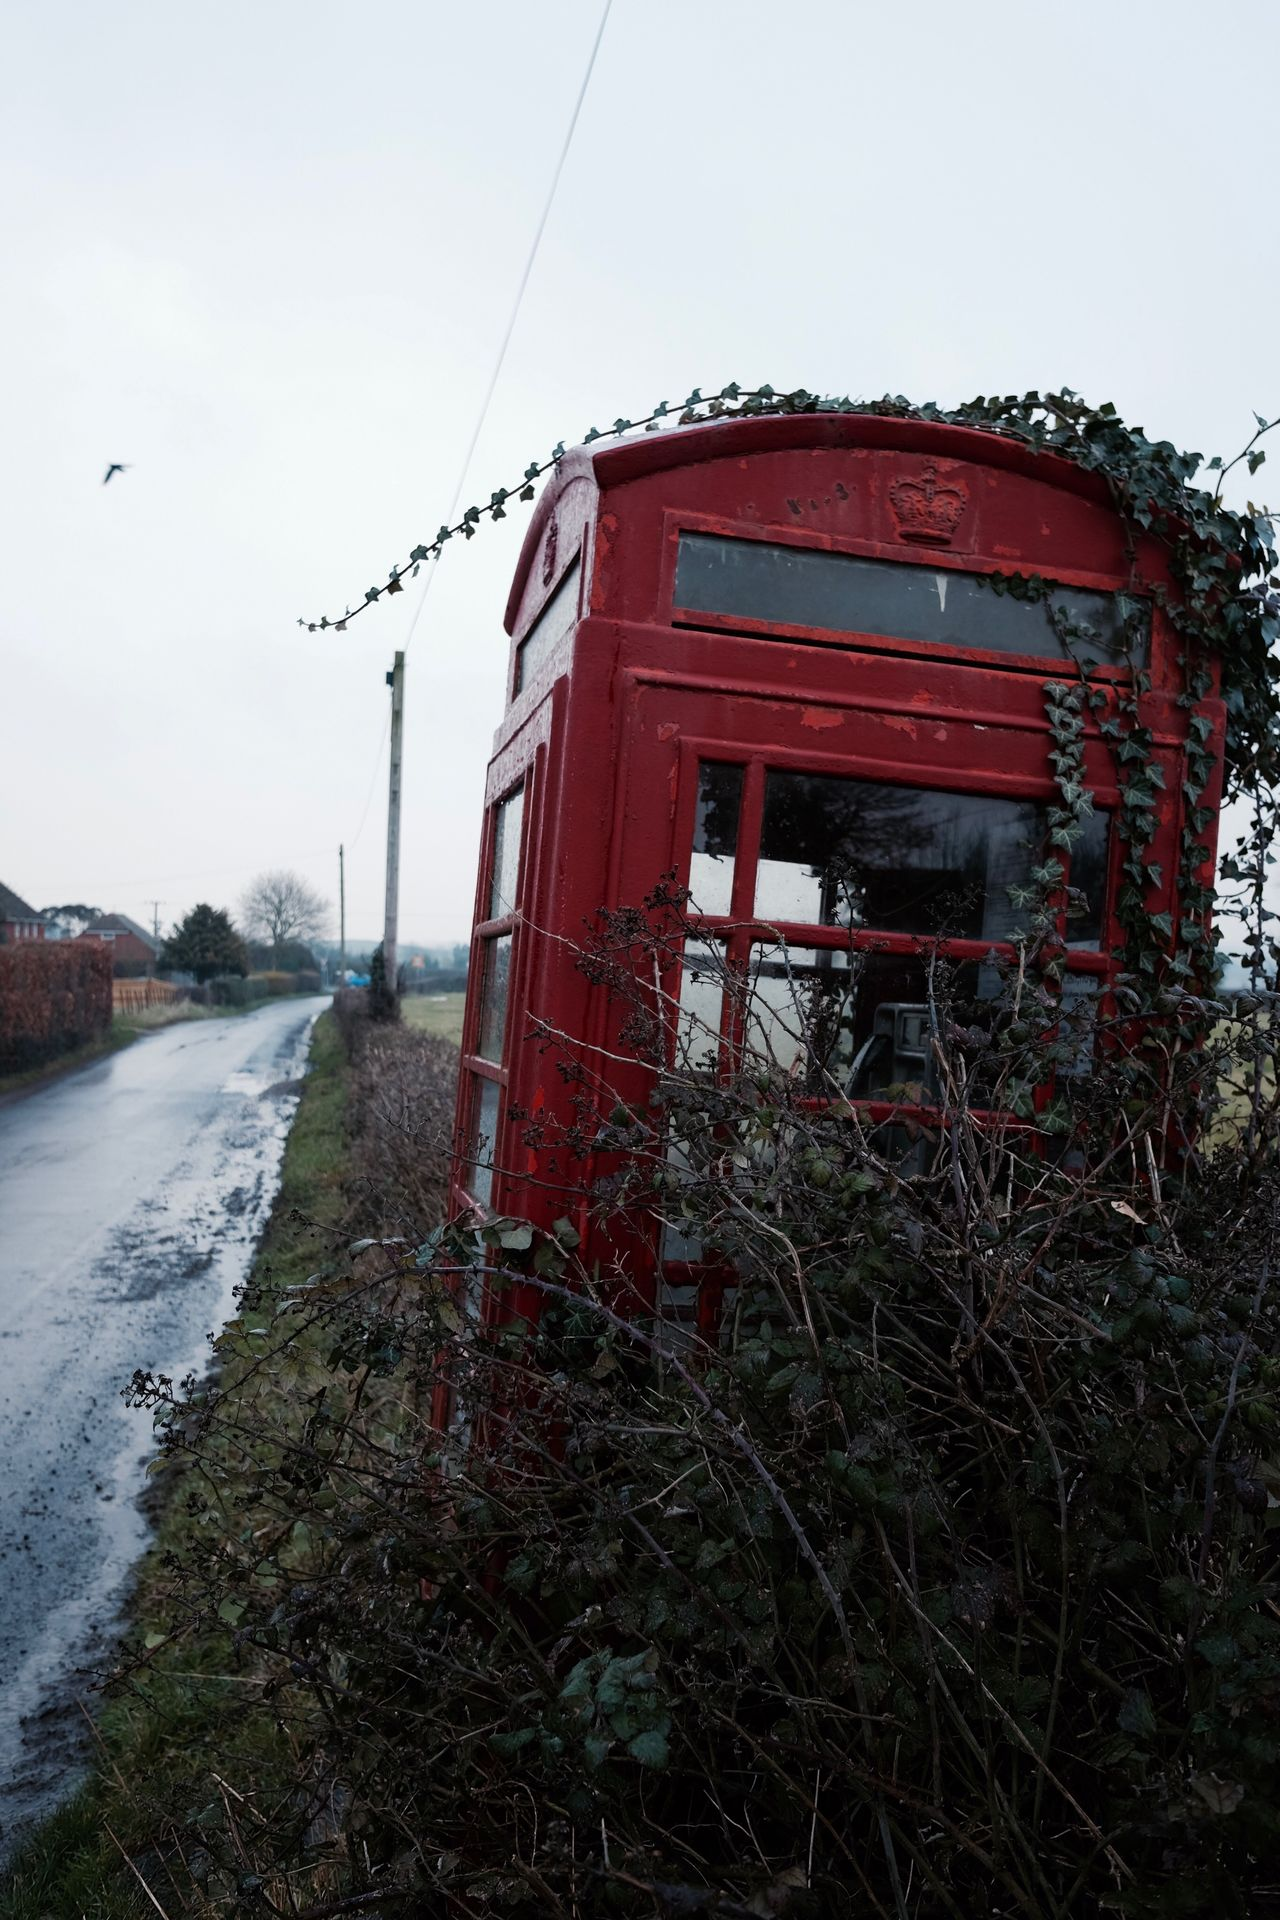 Red Built Structure Sky Outdoors Nature Day No People Phone Box Phone Booth Phone Nature Telephone Booth Red Telephone Box England Countryside